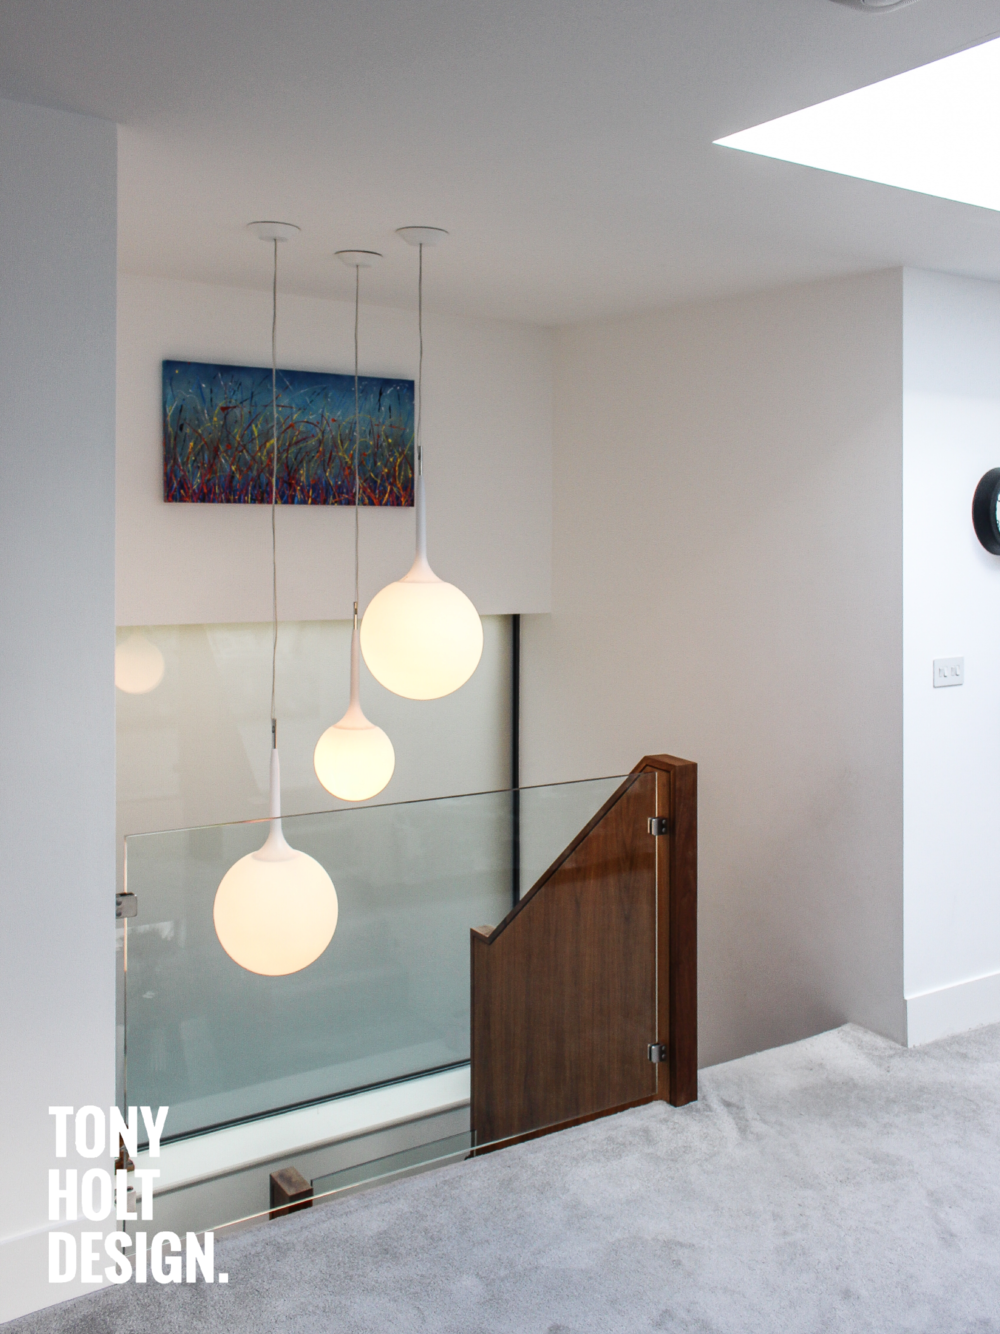 Tony Holt Design_Self Build_Interior 04.png